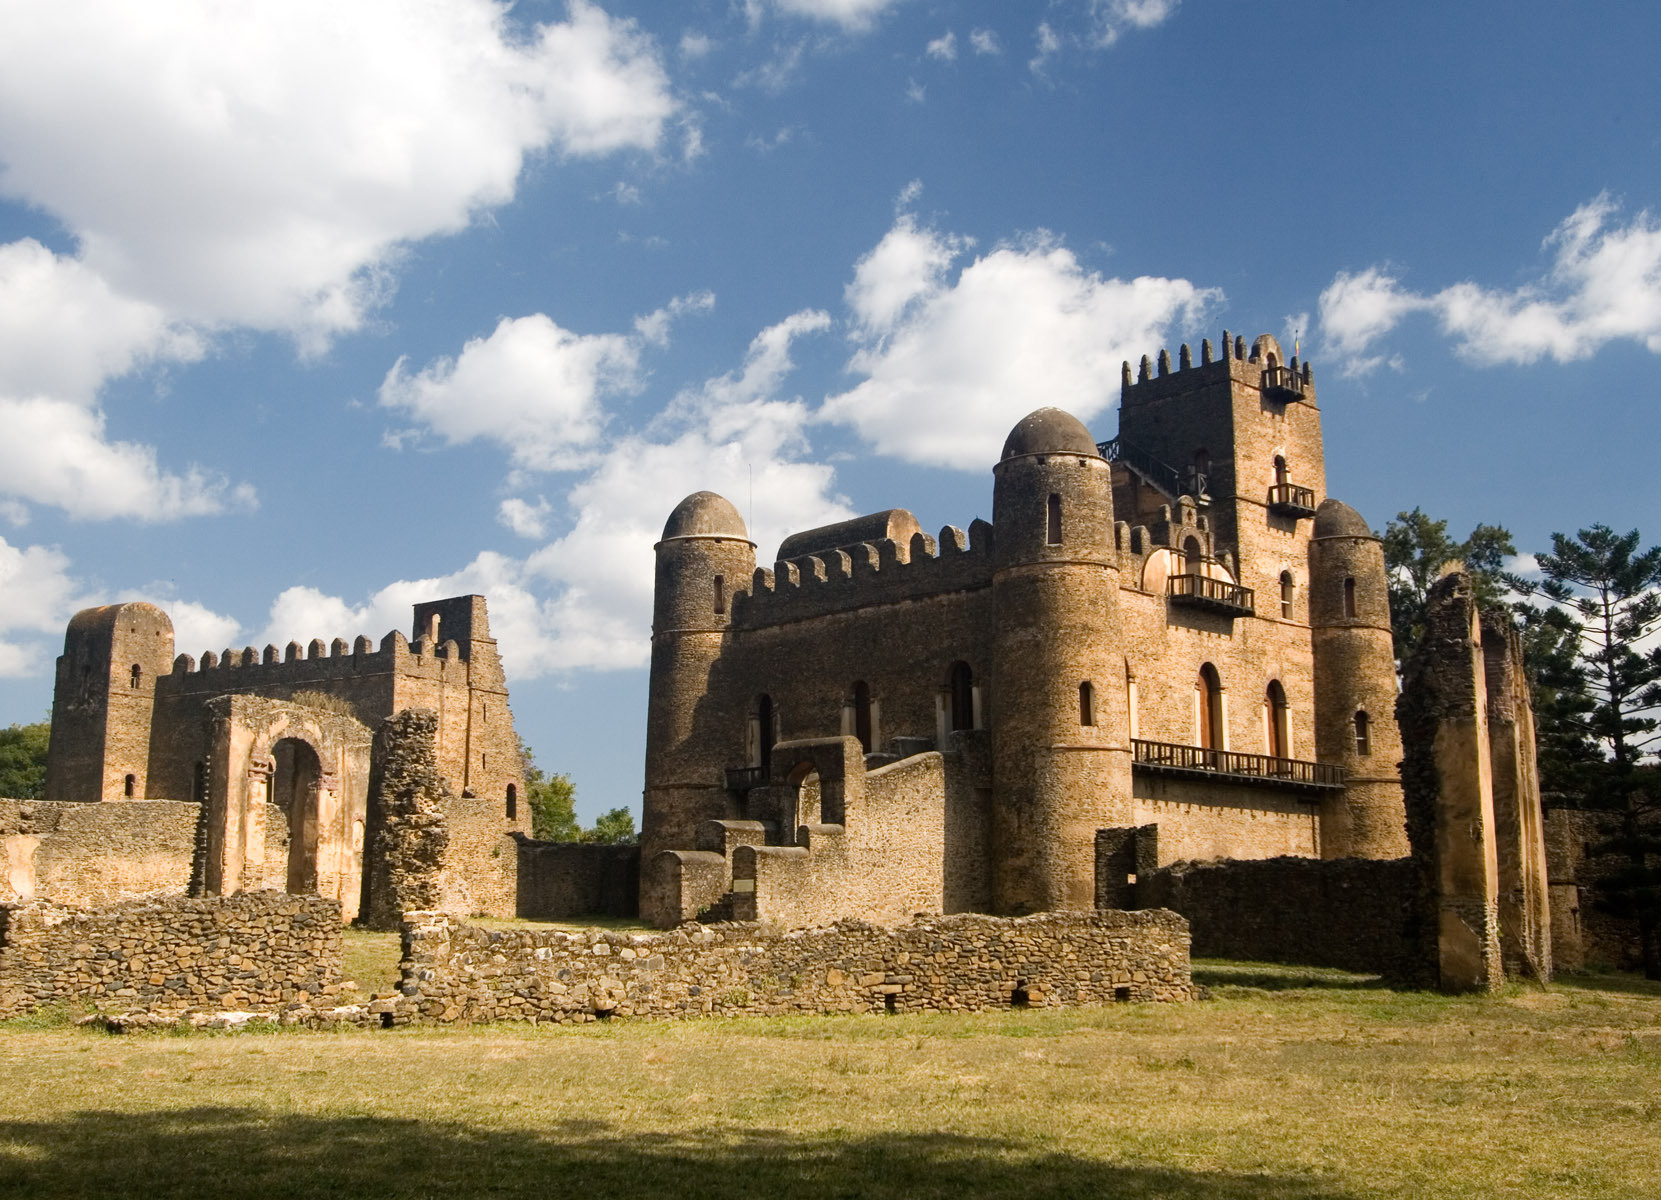 GONDAR (The City Of Royal Castles)